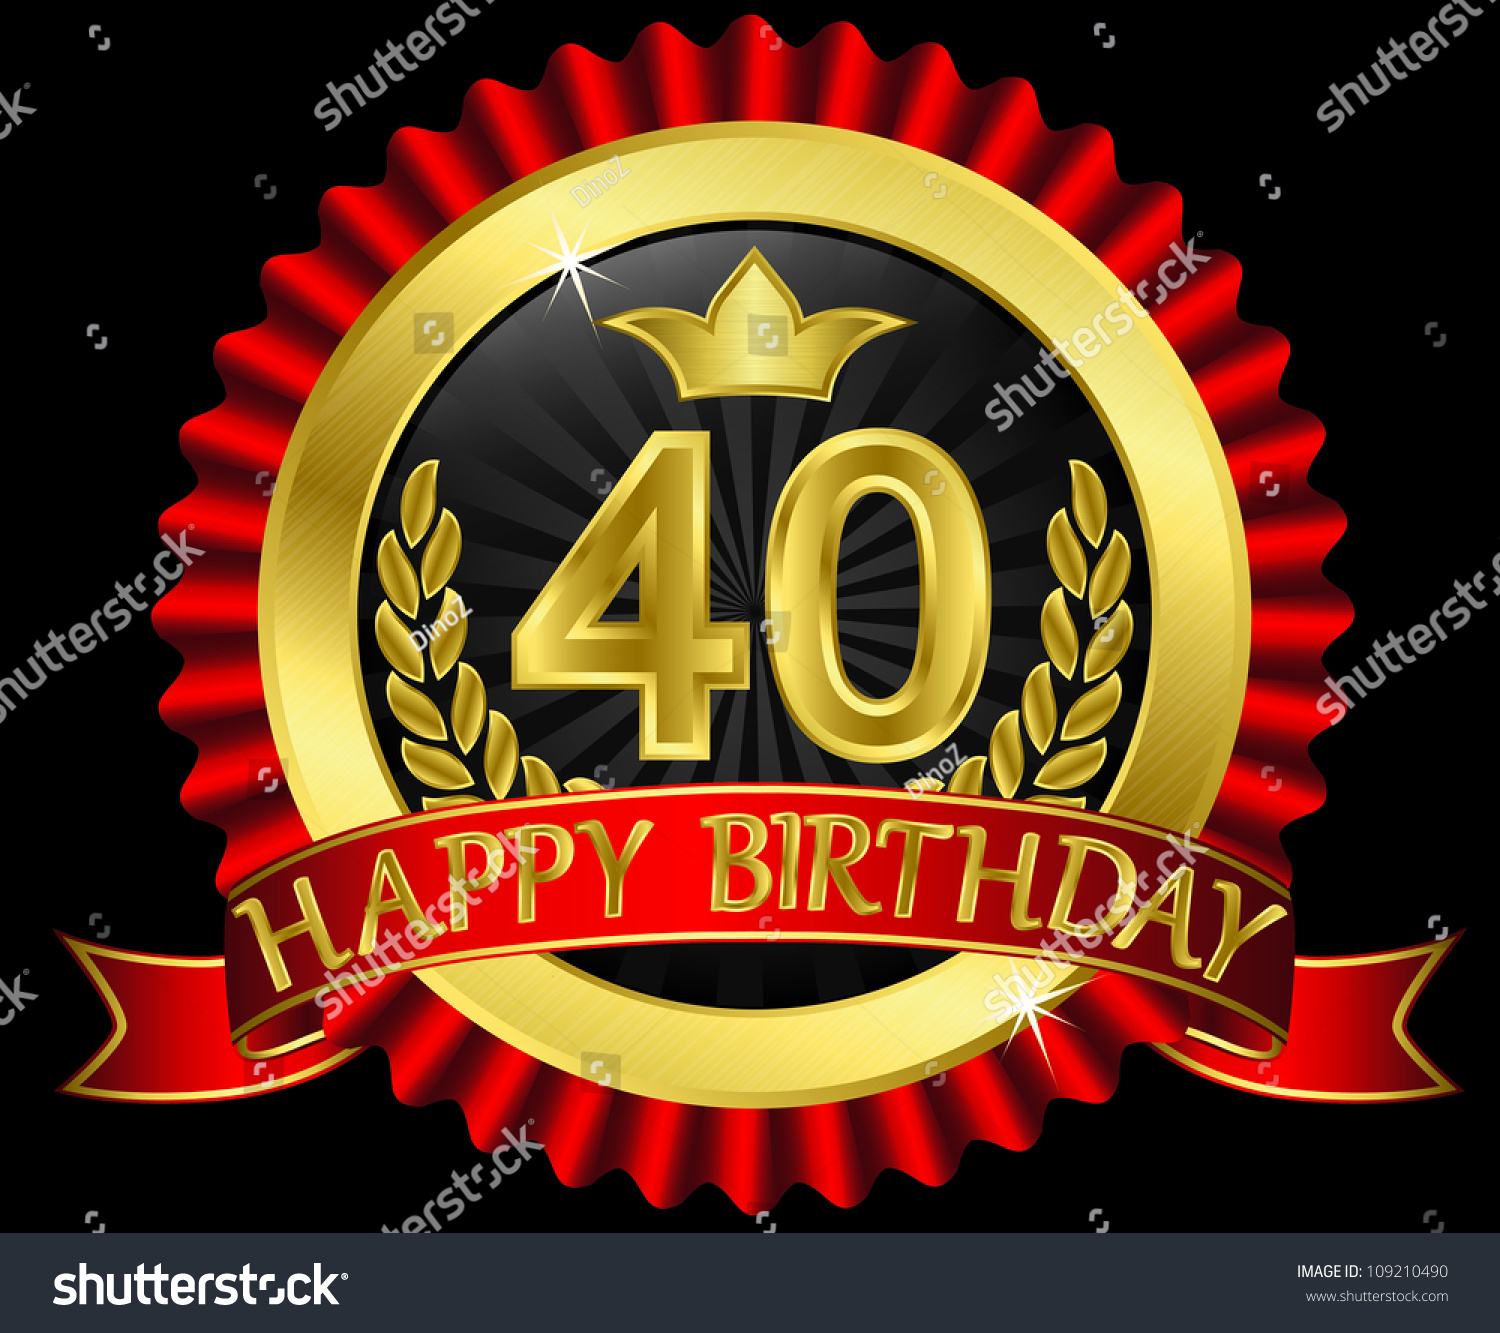 40th birthday symbols image collections symbol and sign ideas 40th year anniversary symbol gallery symbol and sign ideas anniversary symbol 40th anniversary symbol buycottarizona buycottarizona biocorpaavc